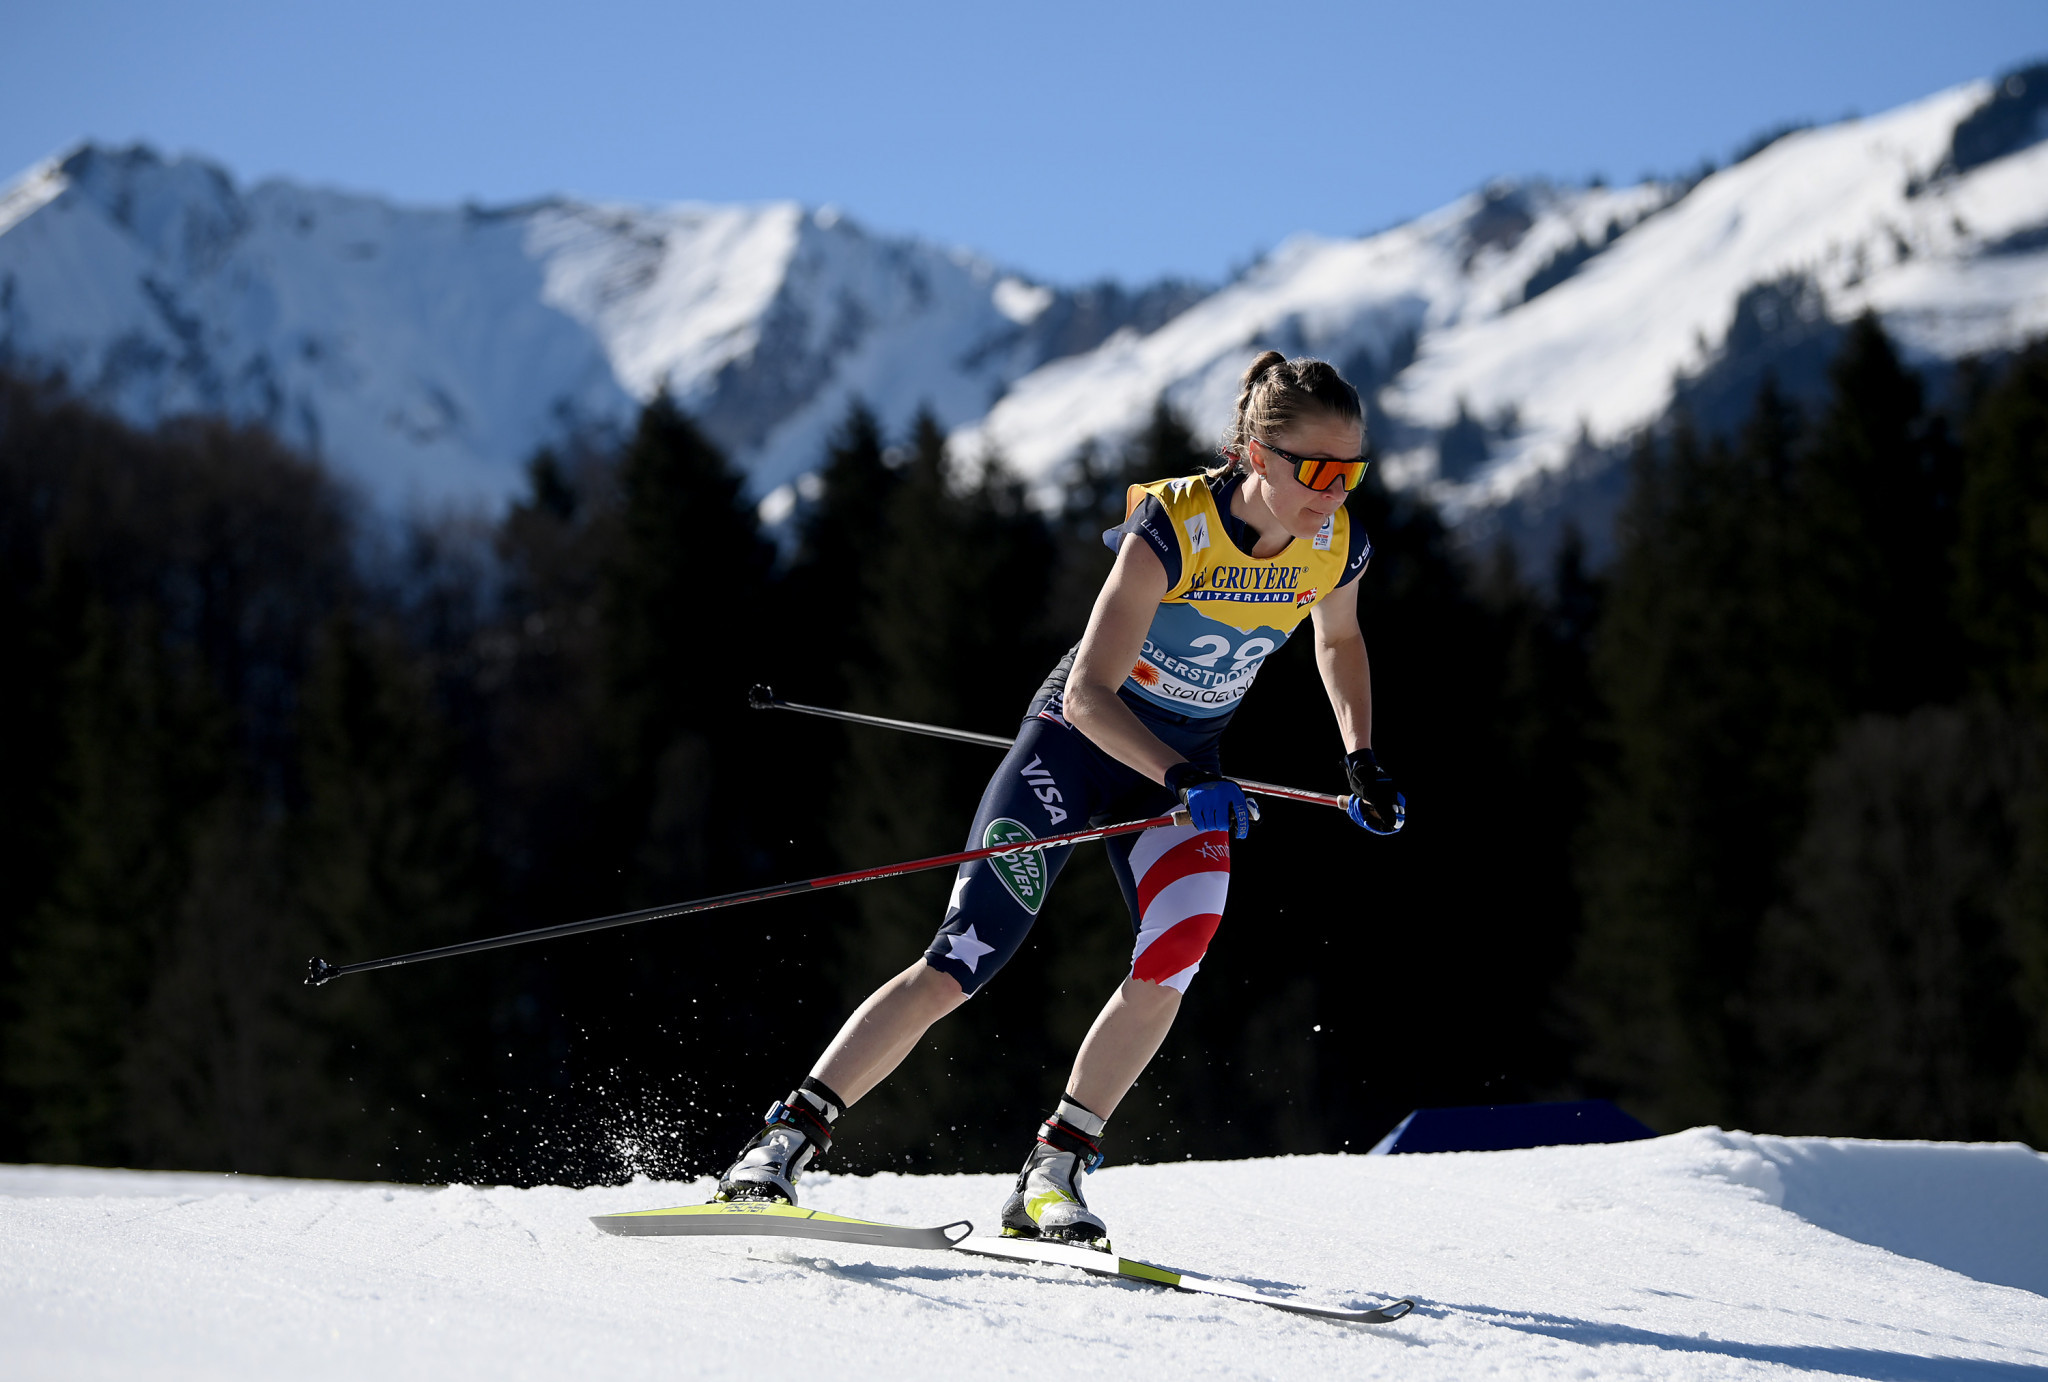 Two-time Olympian Bjornsen retires from cross-country skiing